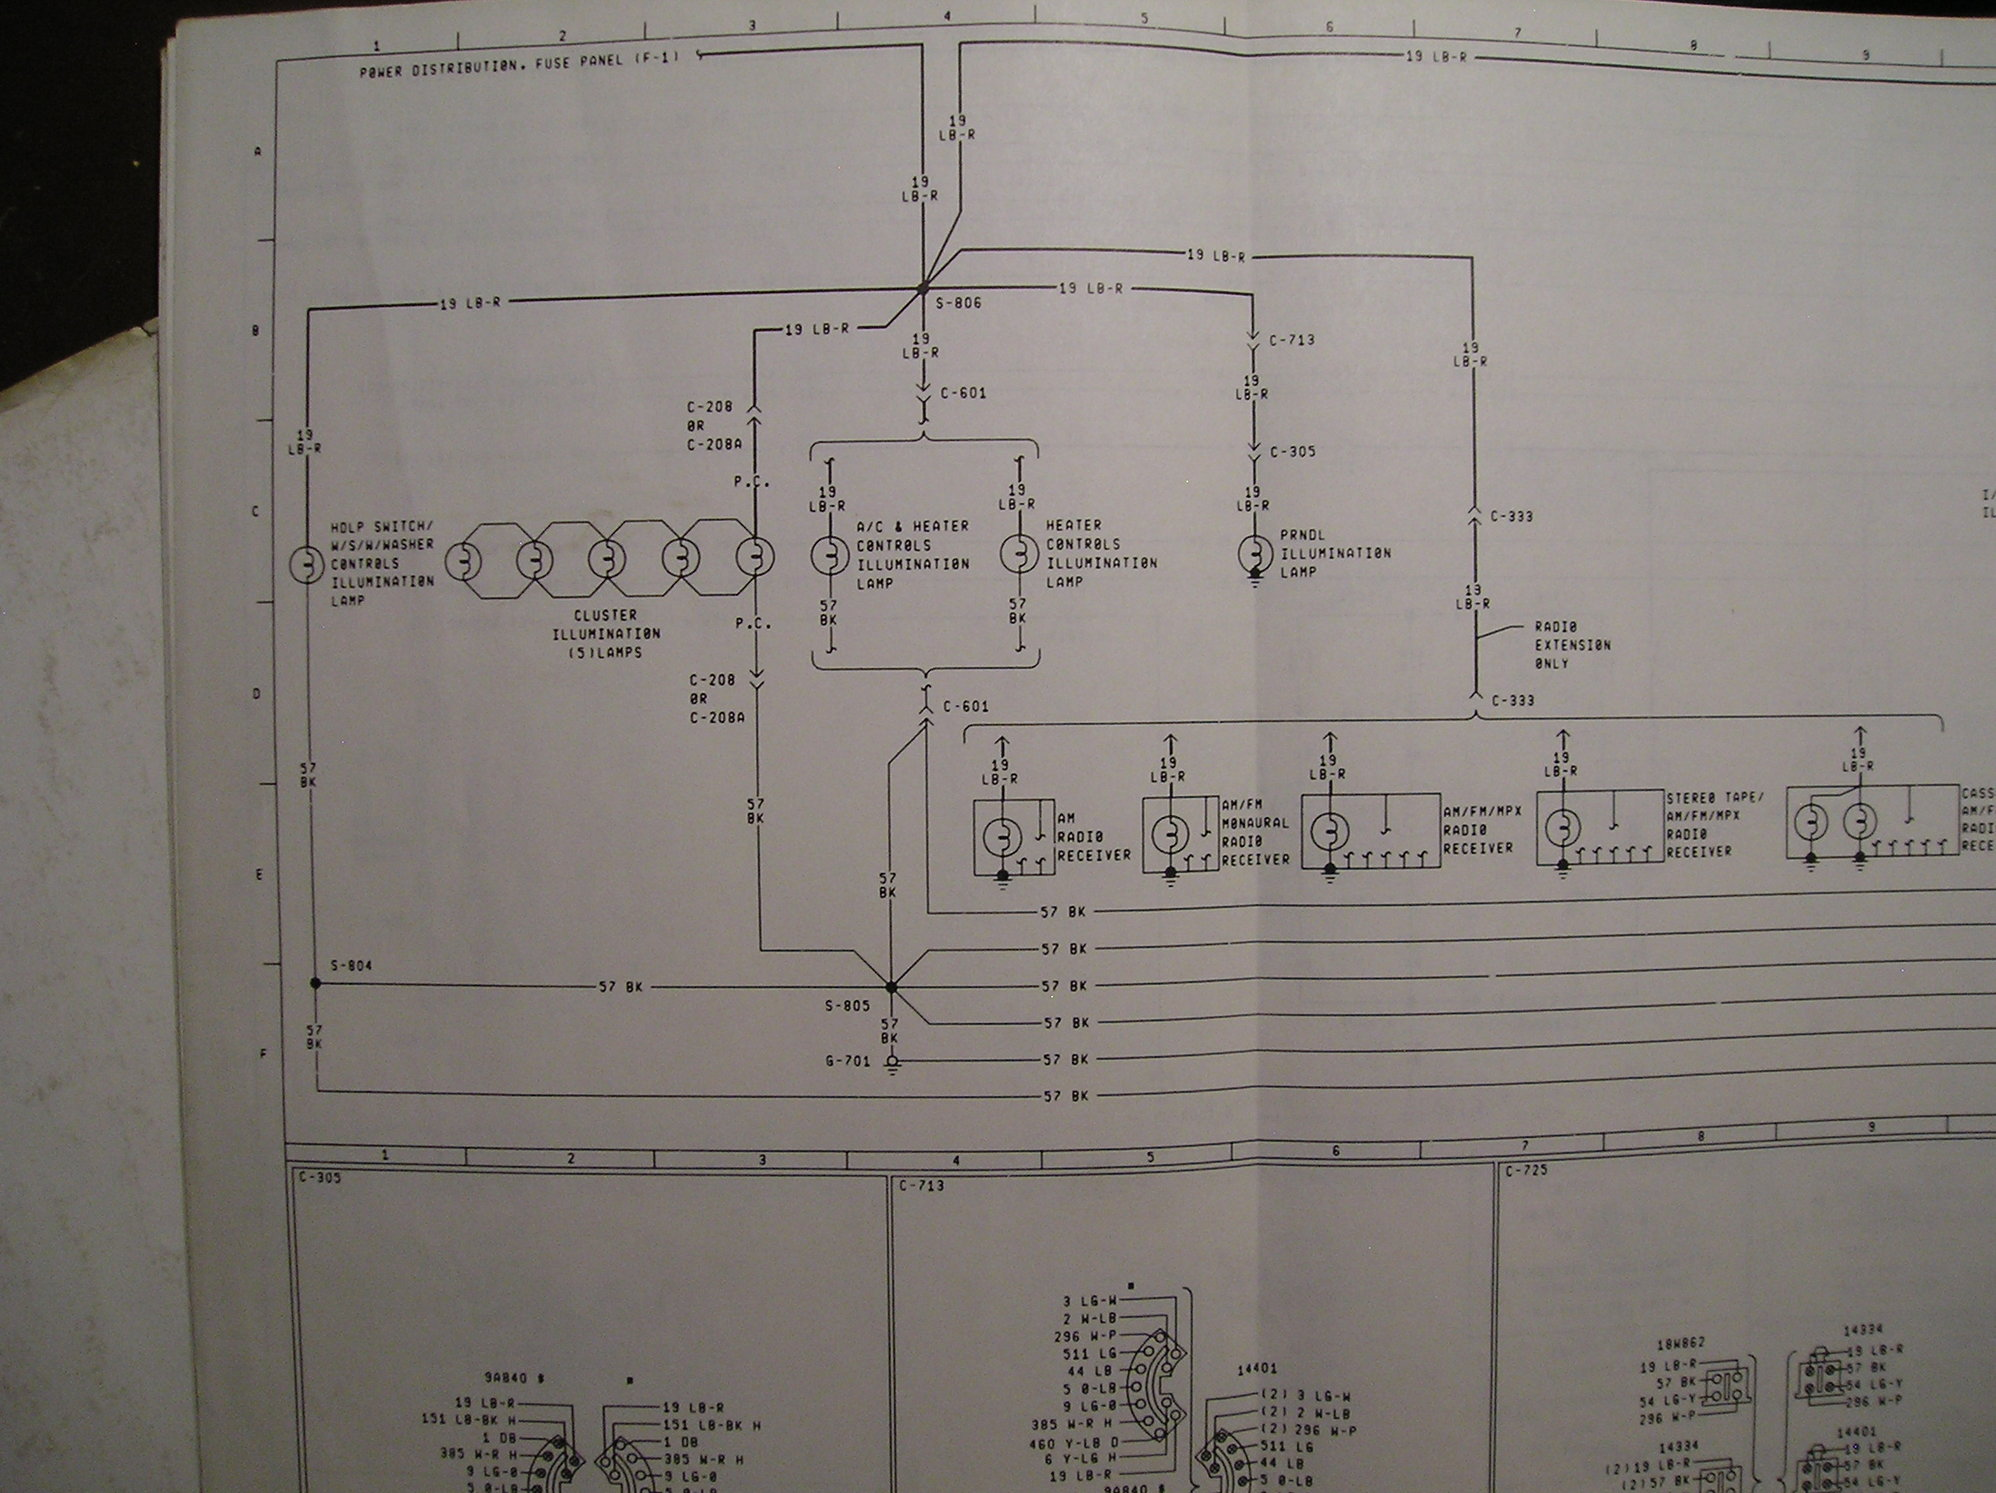 F100 Wiring Diagram For A Truck Furthermore Ford F100 Wiring Diagrams